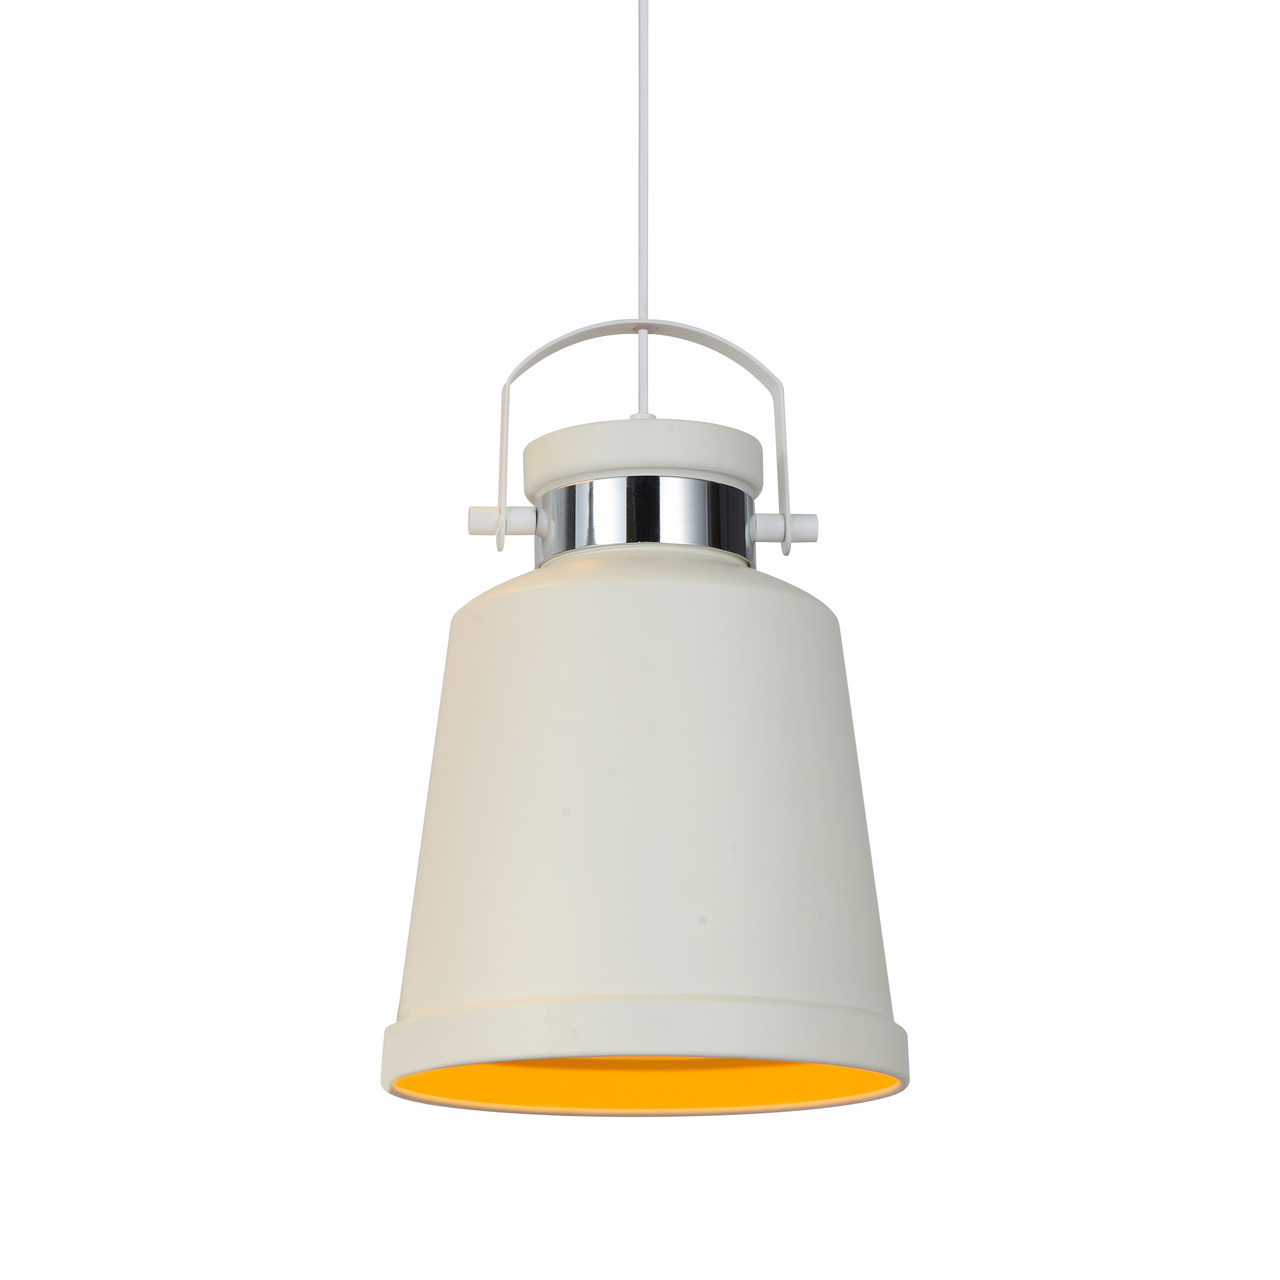 Cocoweb Led Pendant Light Biella